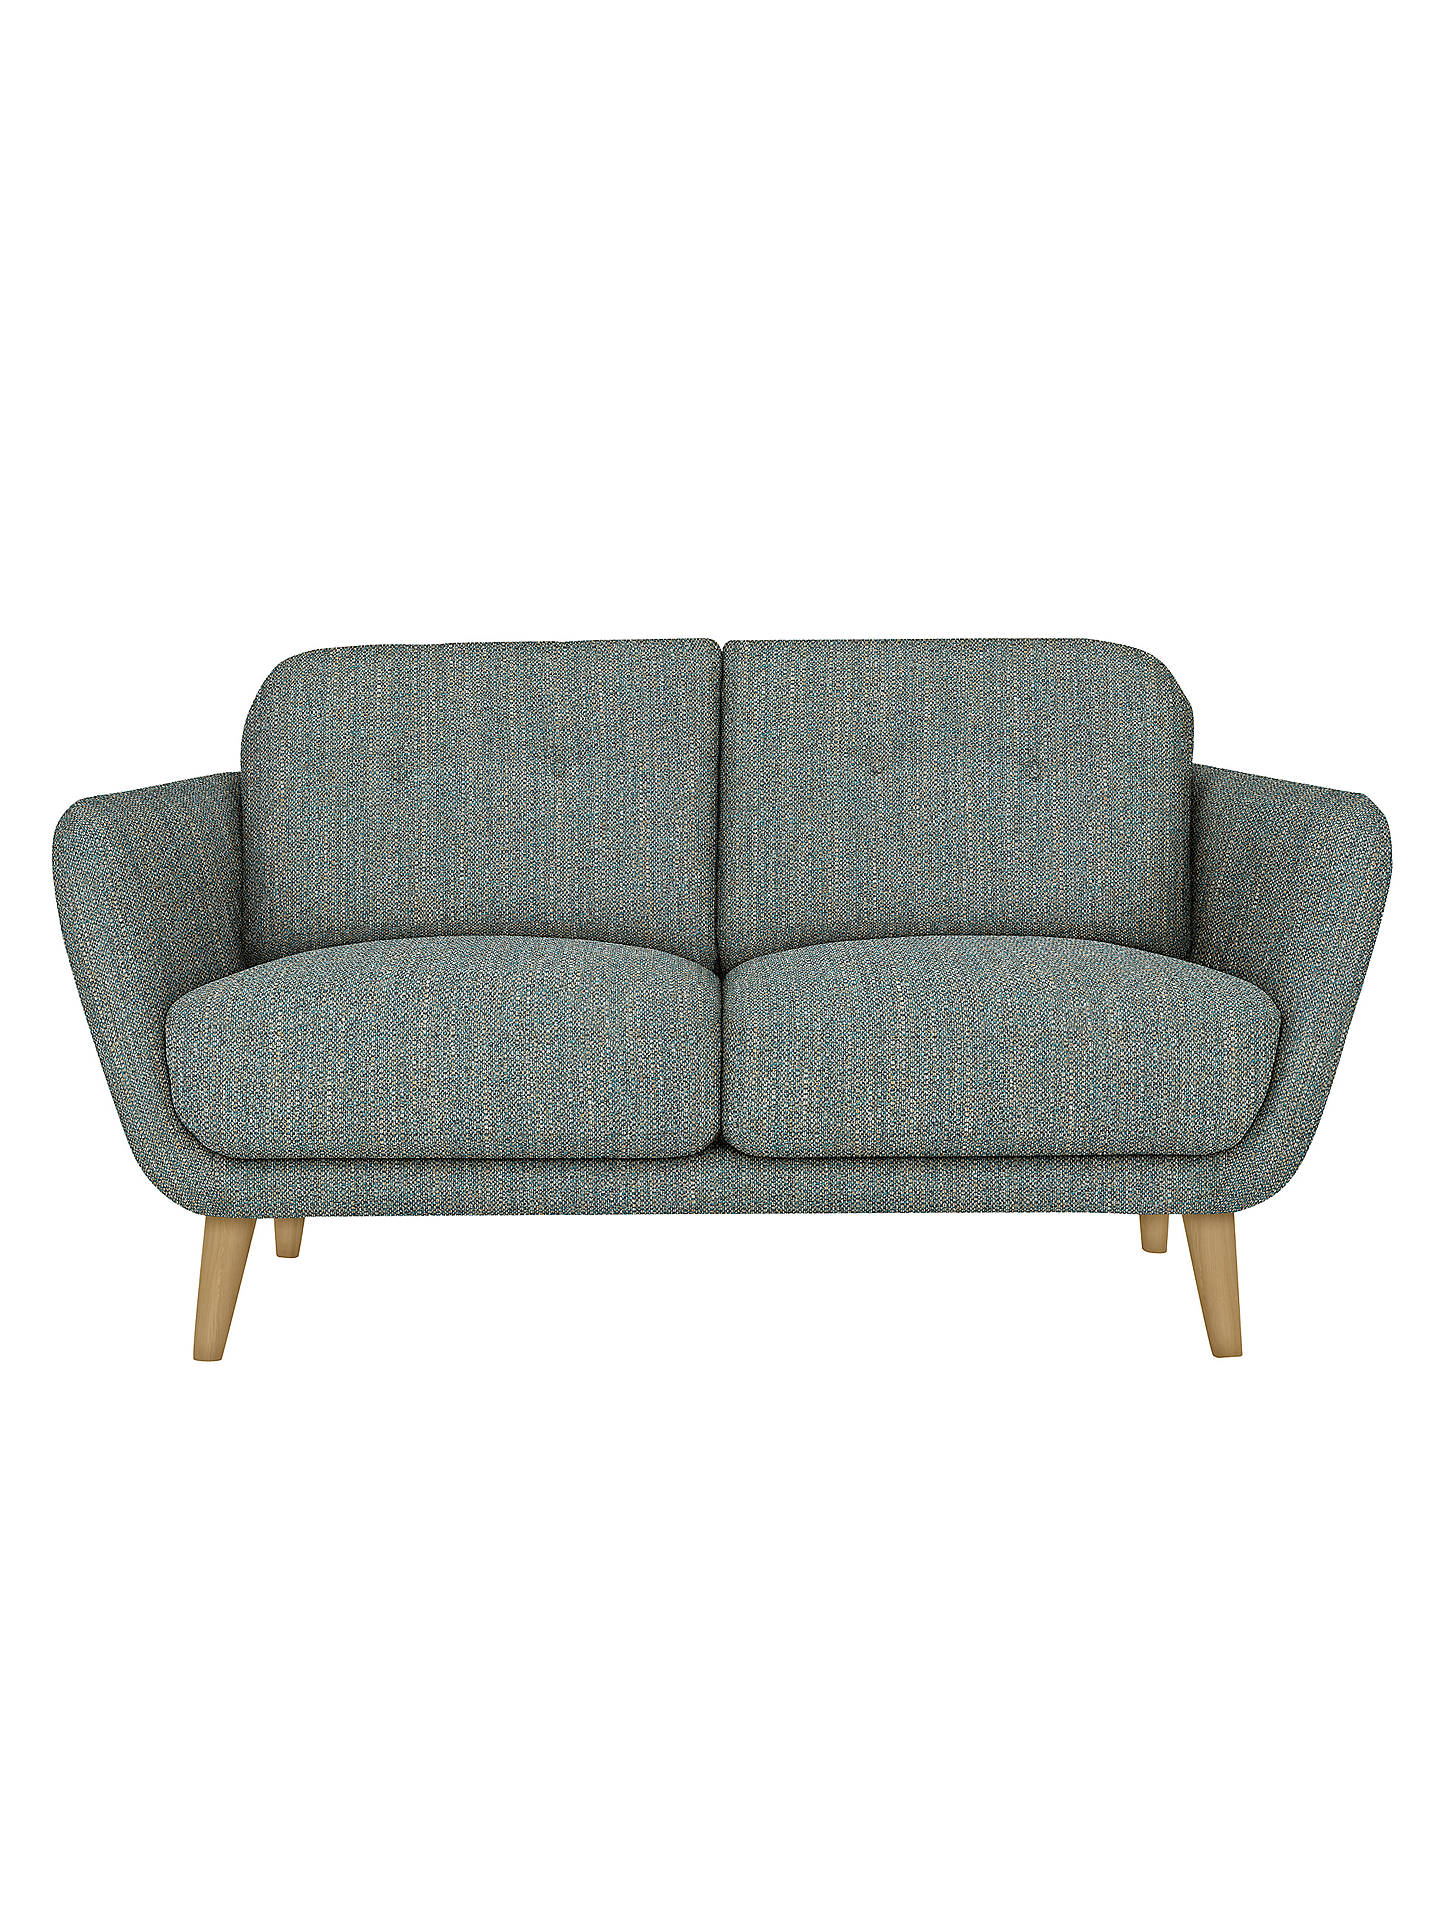 BuyHouse by John Lewis Arlo Small 2 Seater Sofa, Light Leg, Ffion Teal Online at johnlewis.com